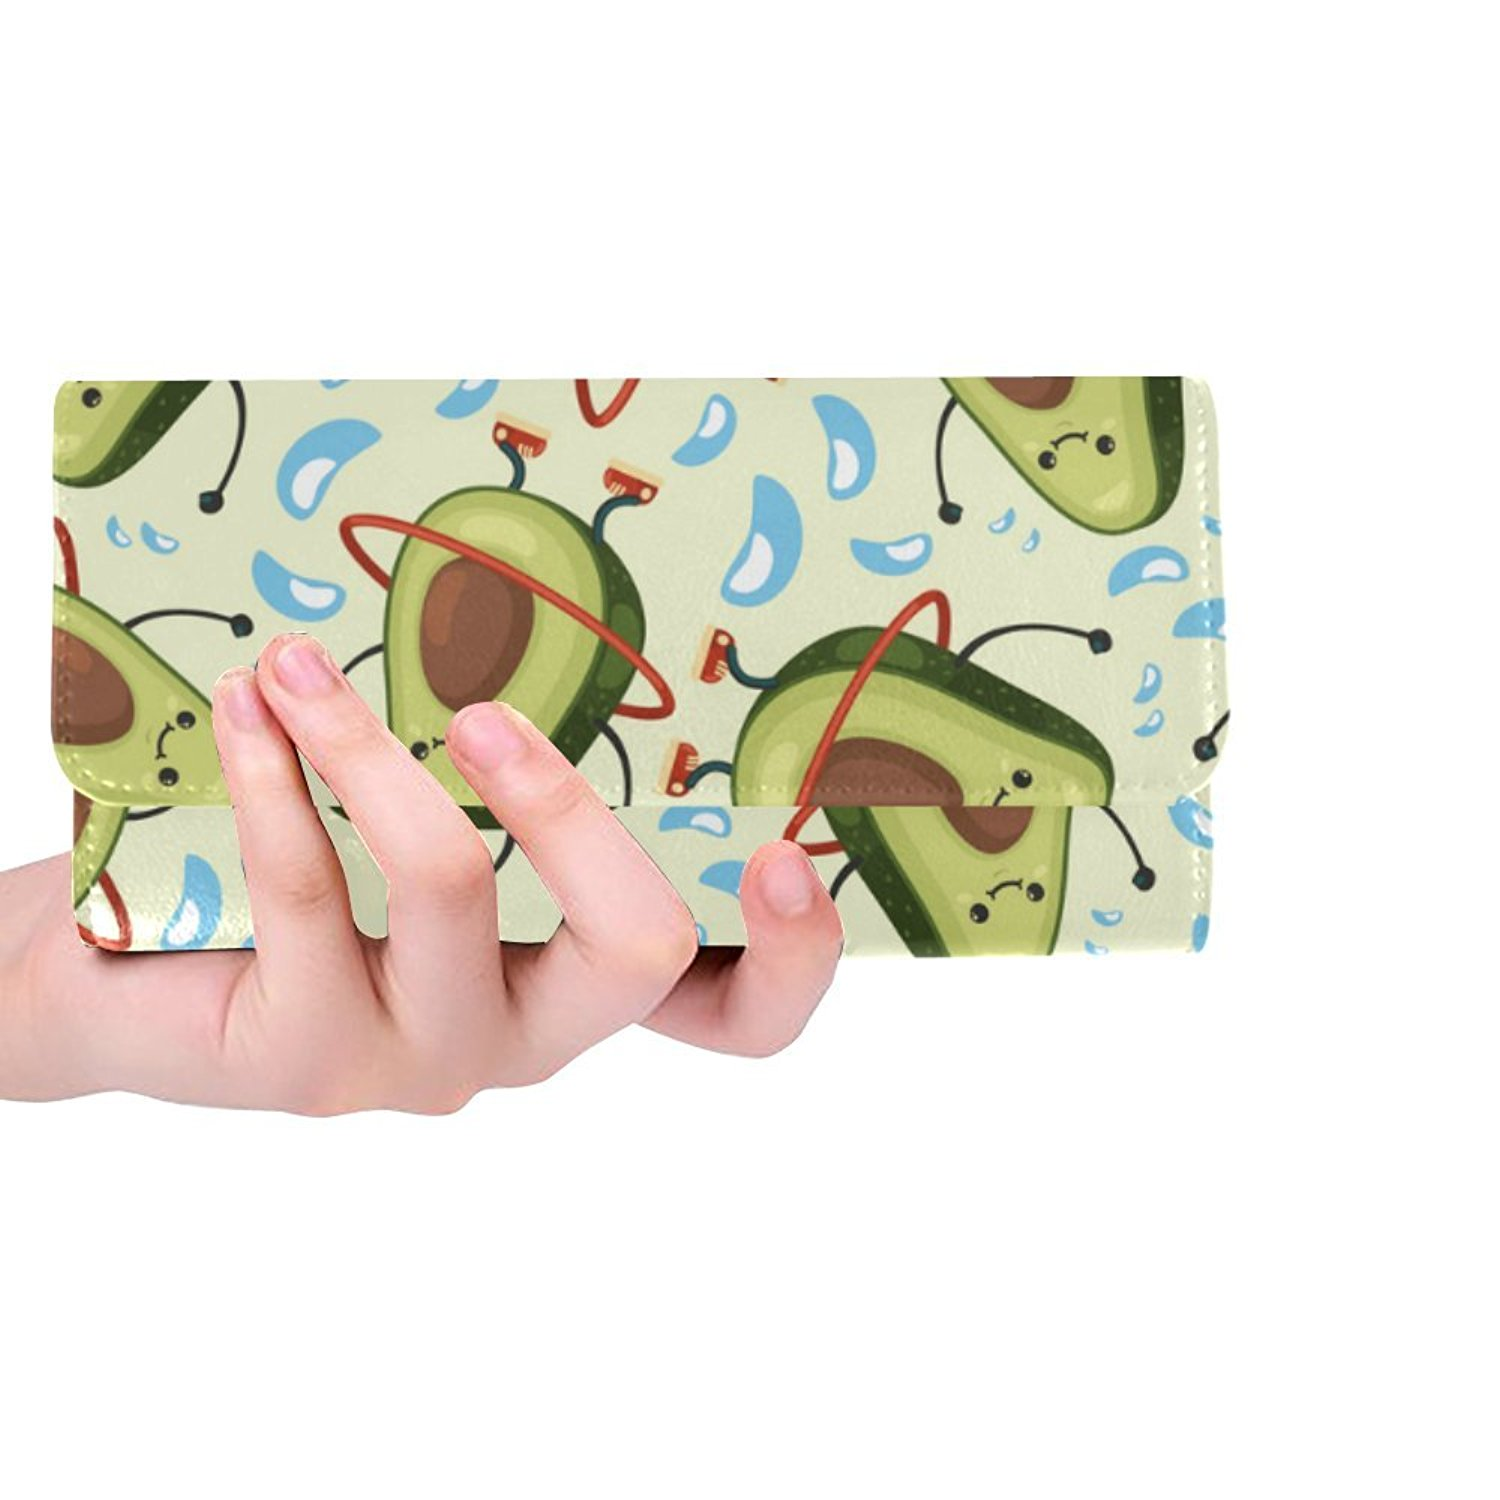 9c3c031dfc72 Cheap Trifold Wallets For Women, find Trifold Wallets For Women ...